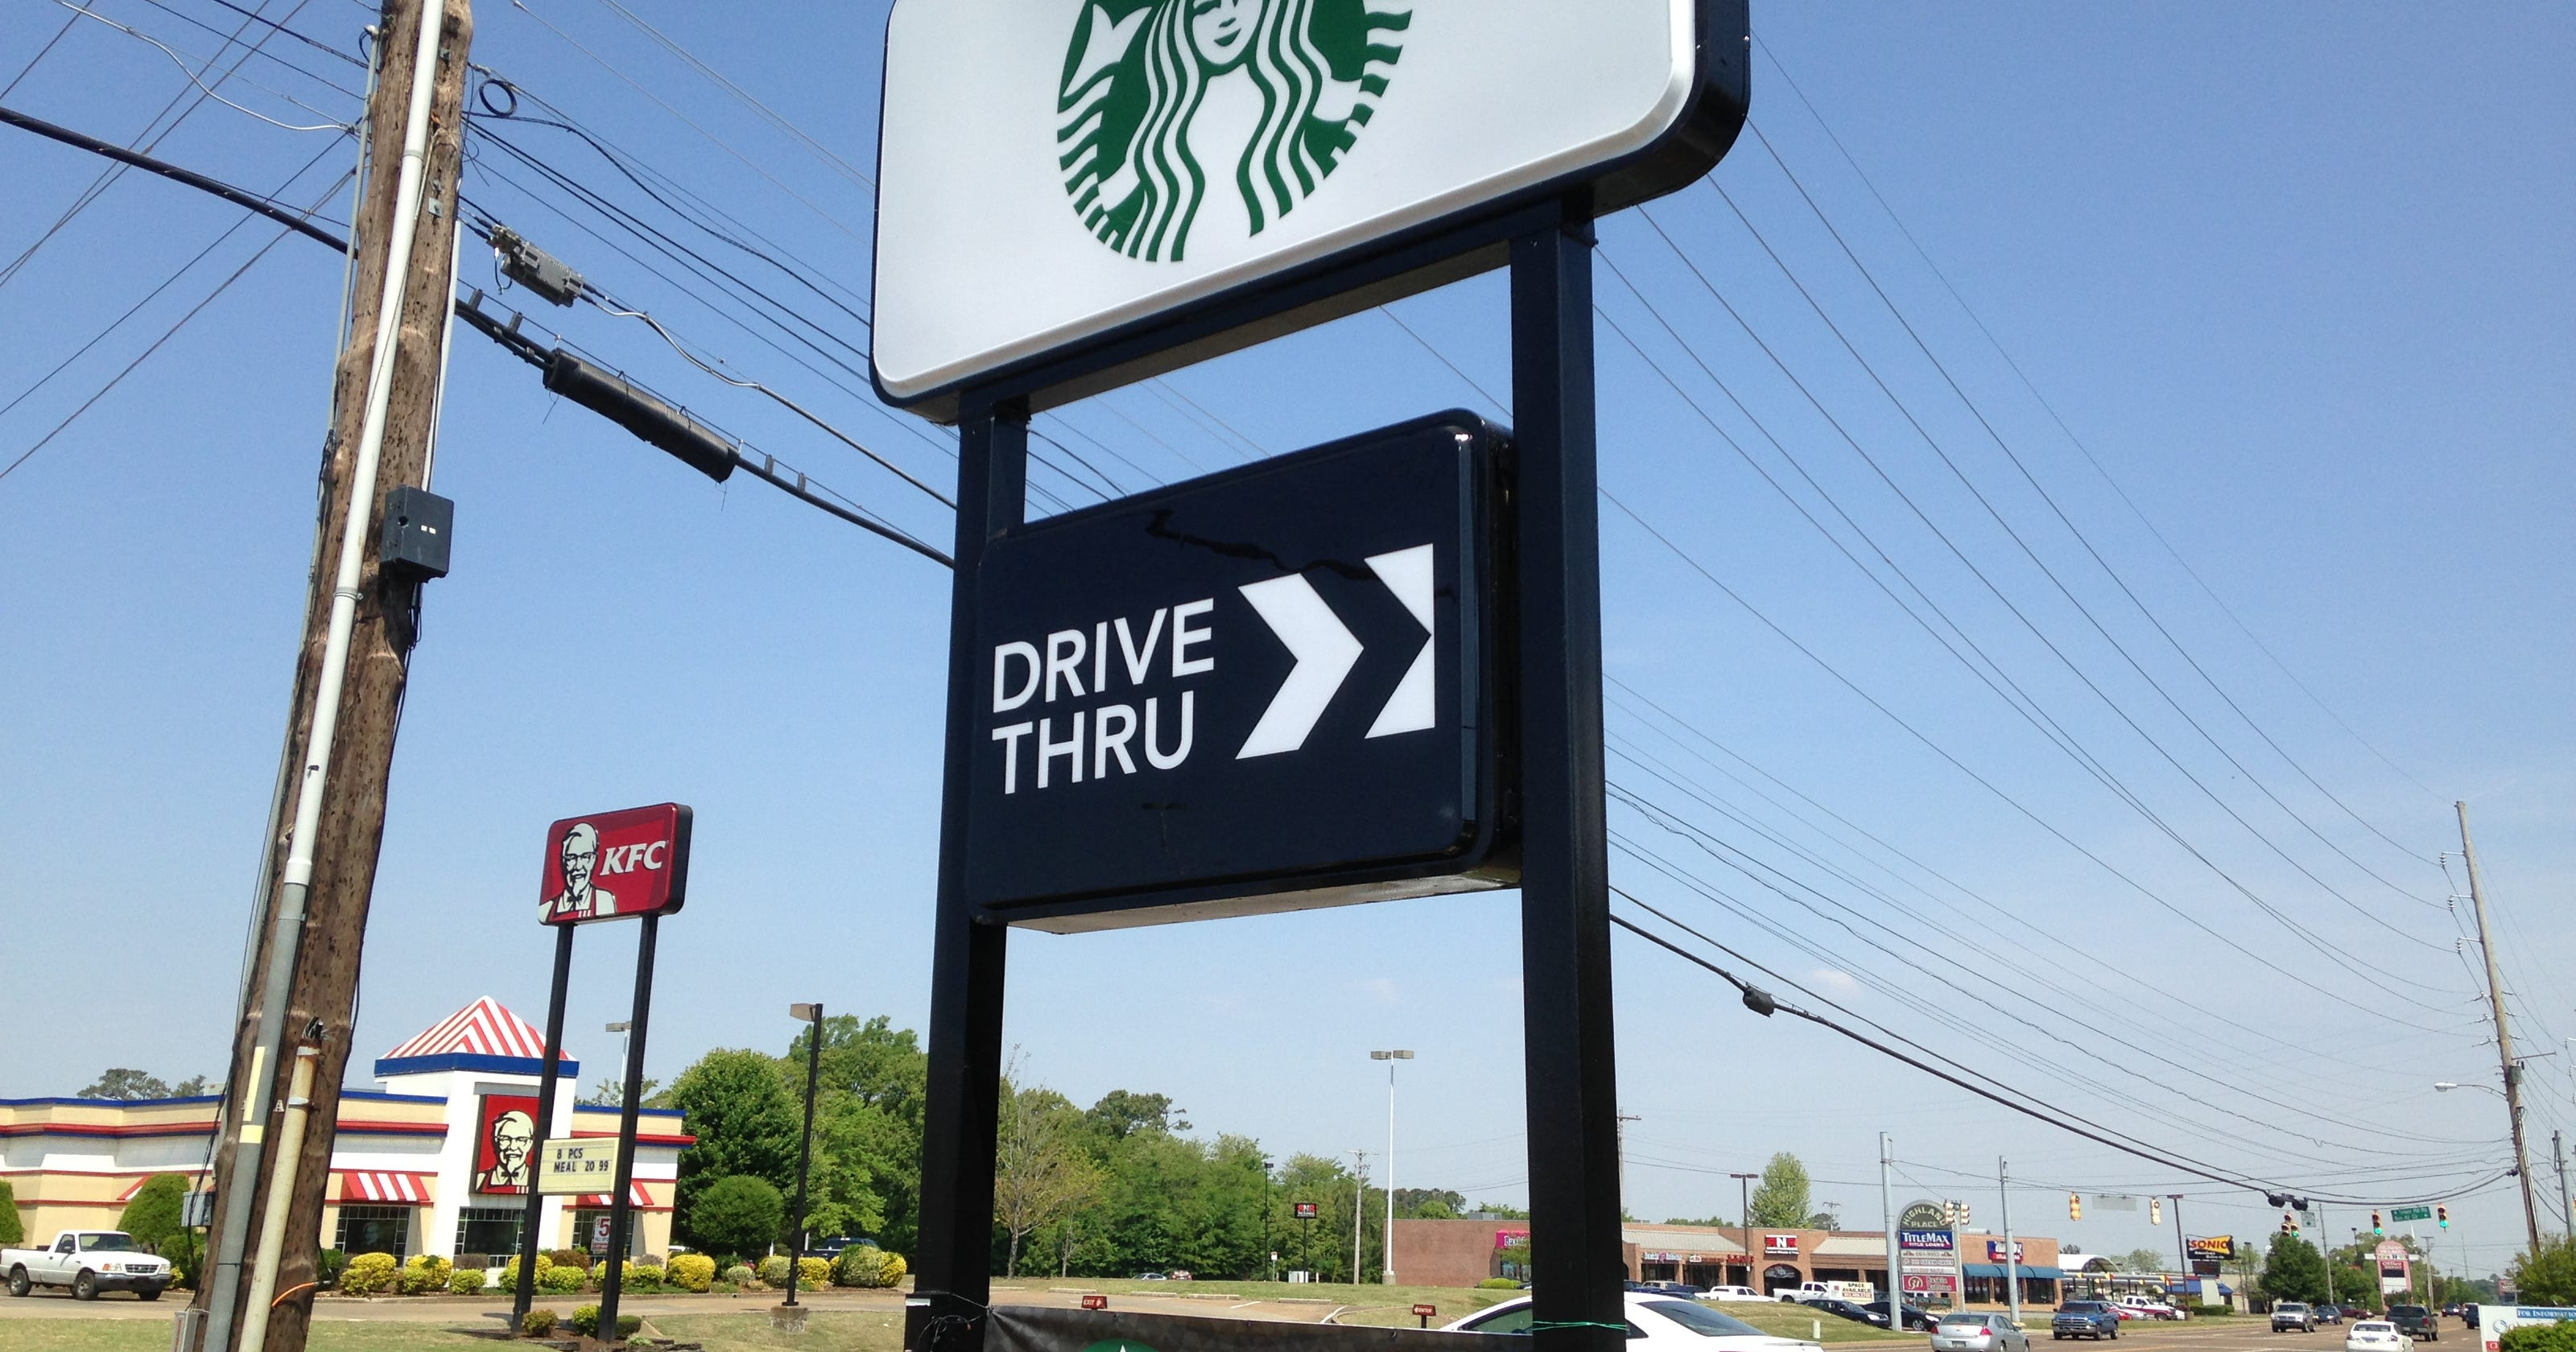 Starbucks With Drive Through Opens At 2034 N Highland Ave